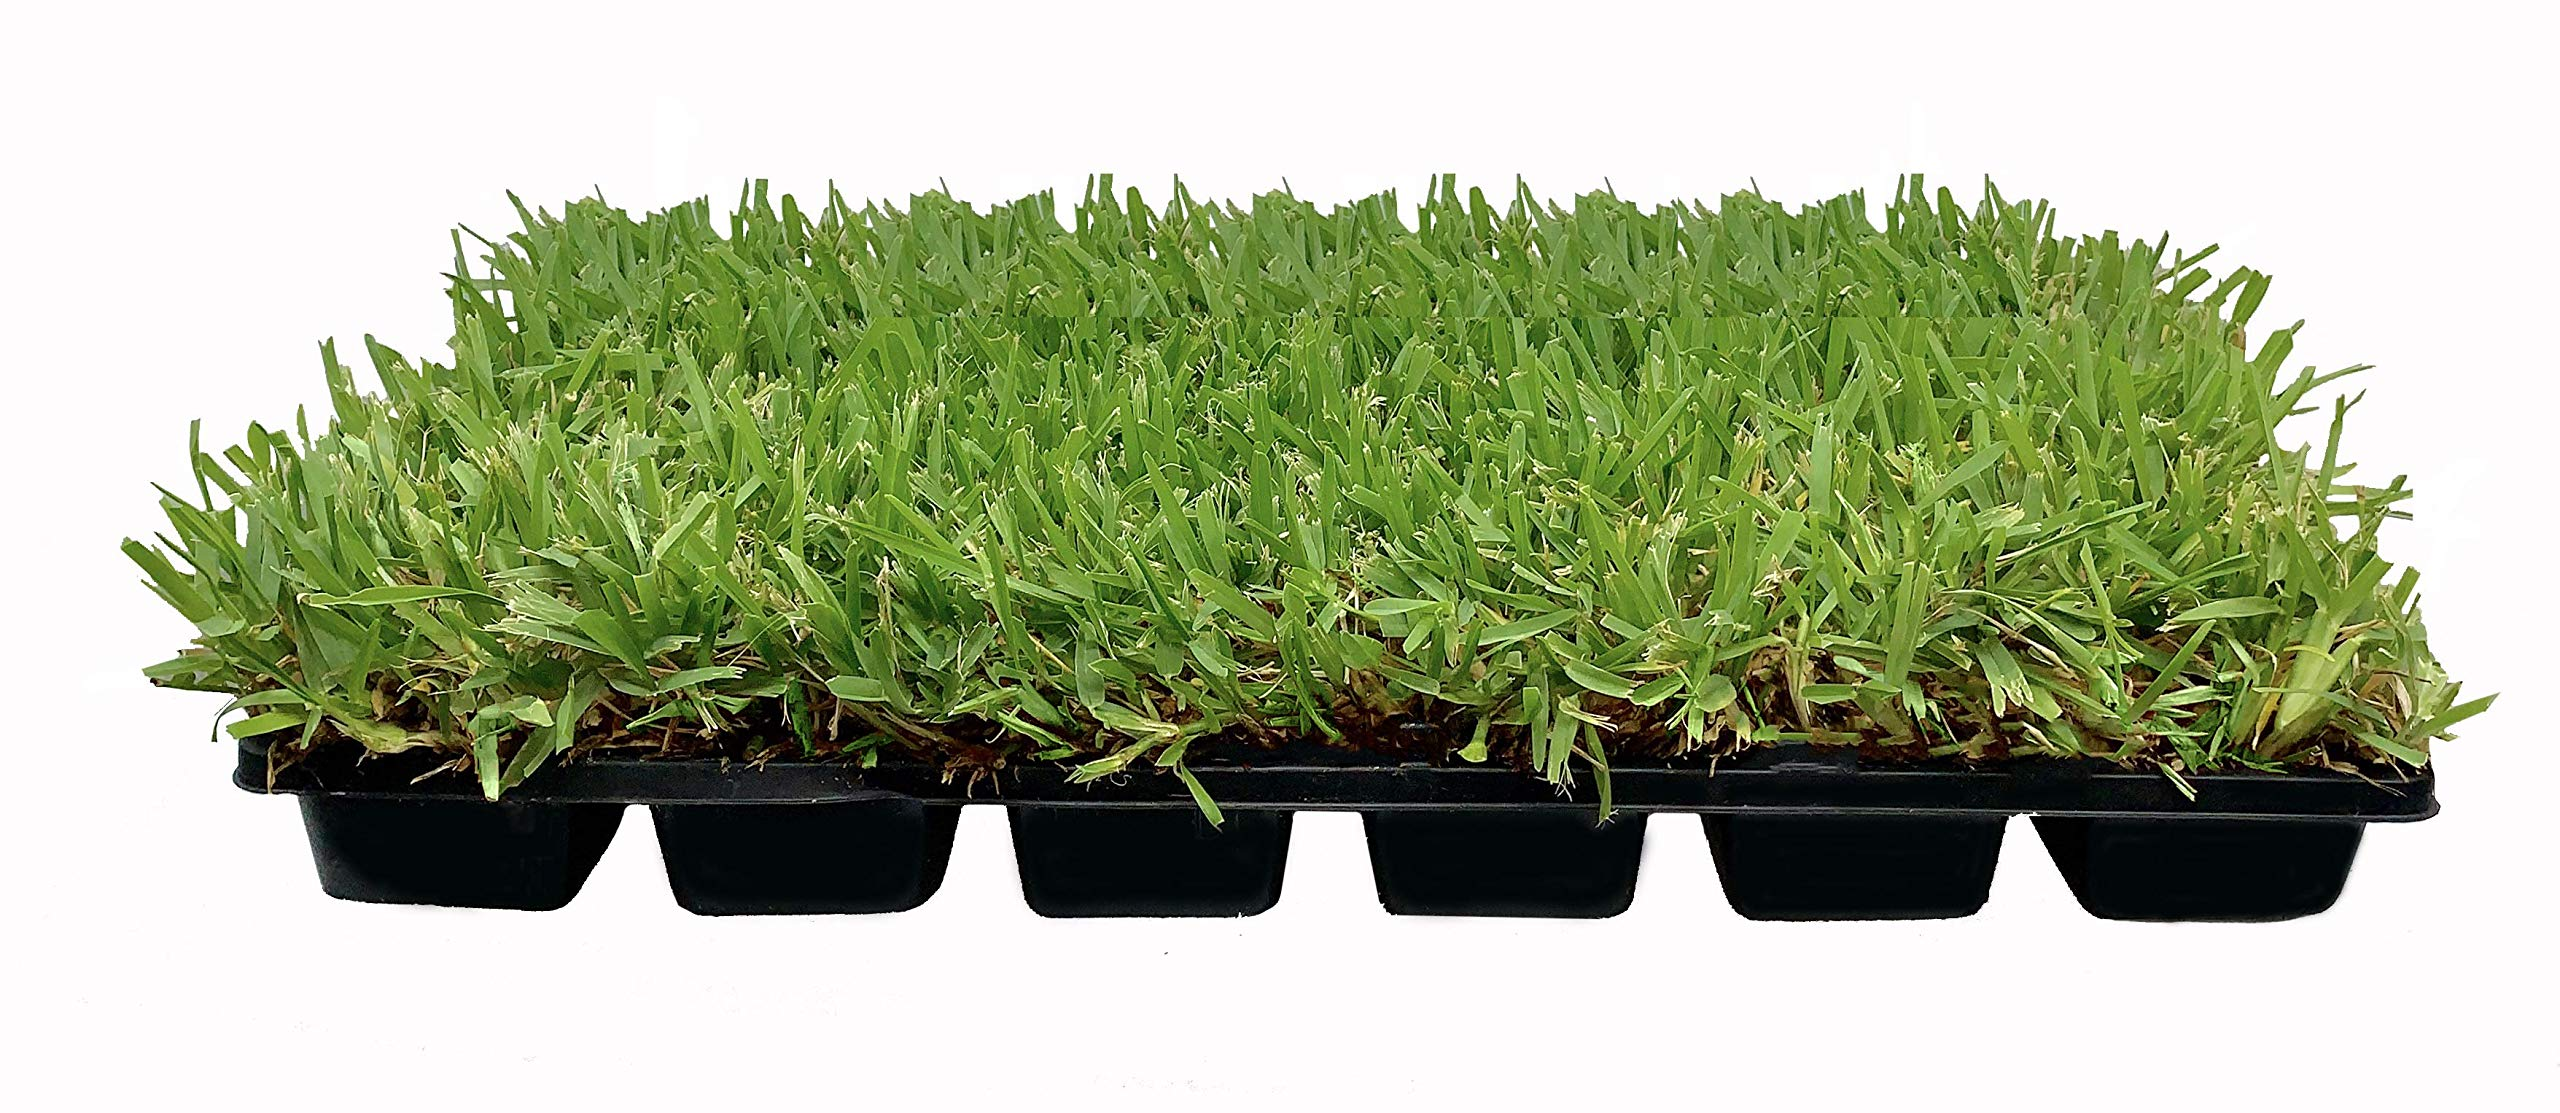 St. Augustine 'Palmetto' 3 Inch Sod Plugs - 36 Plugs - Drought, Salt, Shade, Cold, Heat & Frost Tolerant Turf Grass